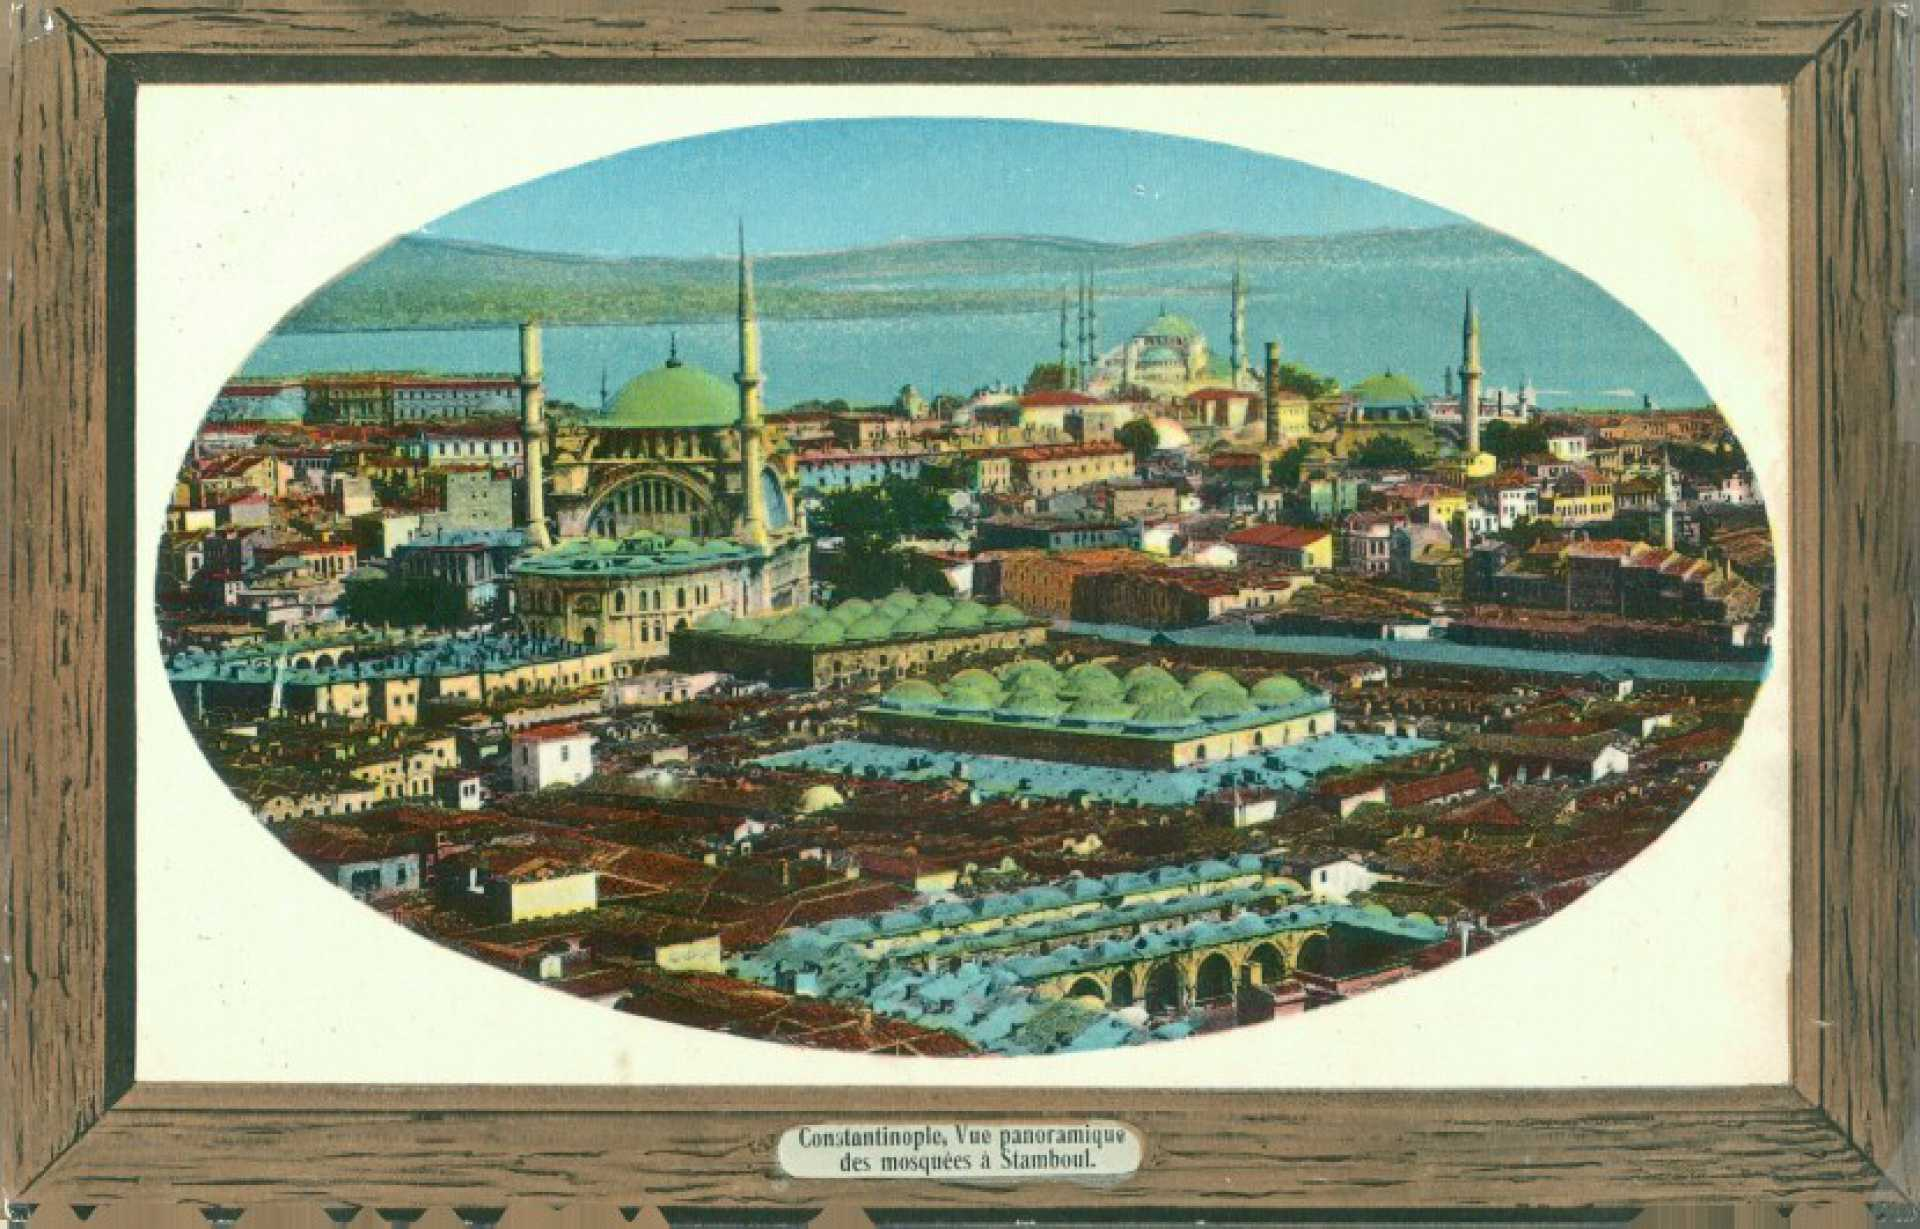 Constantinople. Vue panoramique des mosquees a Stamboul